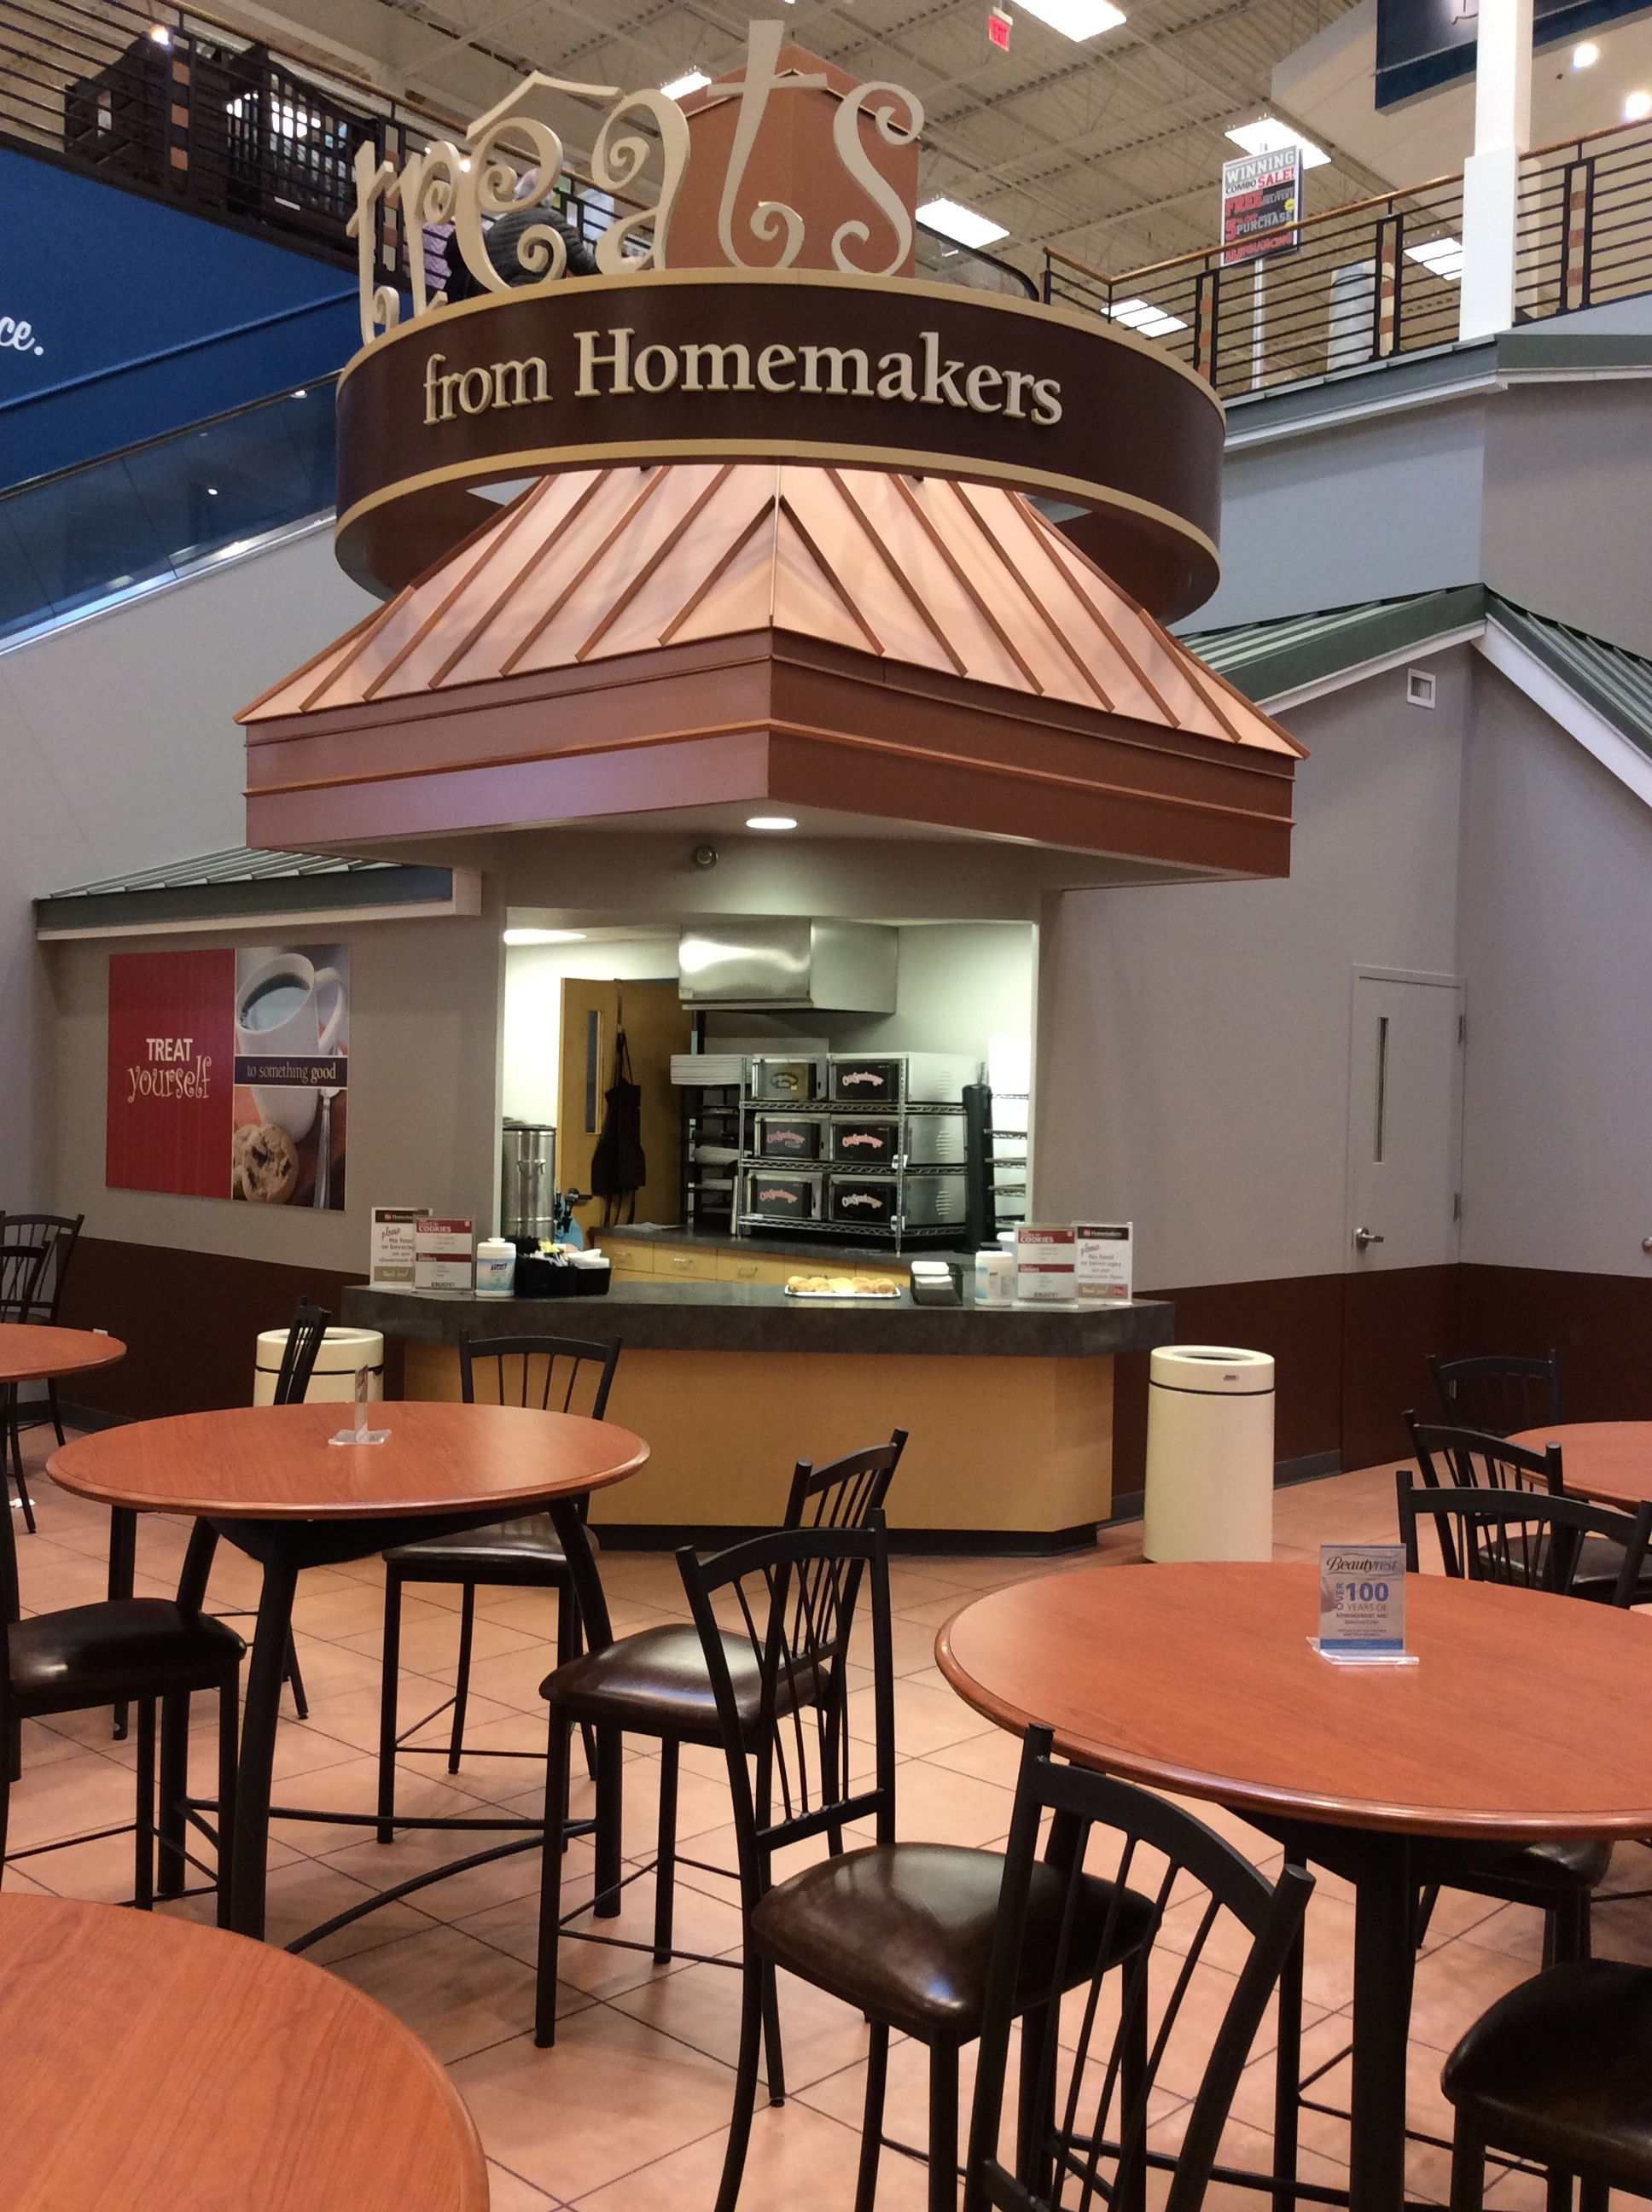 Furniture Stores Des Moines Ia | Mattress Stores in Ames Iowa | Homemakers Des Moines Iowa